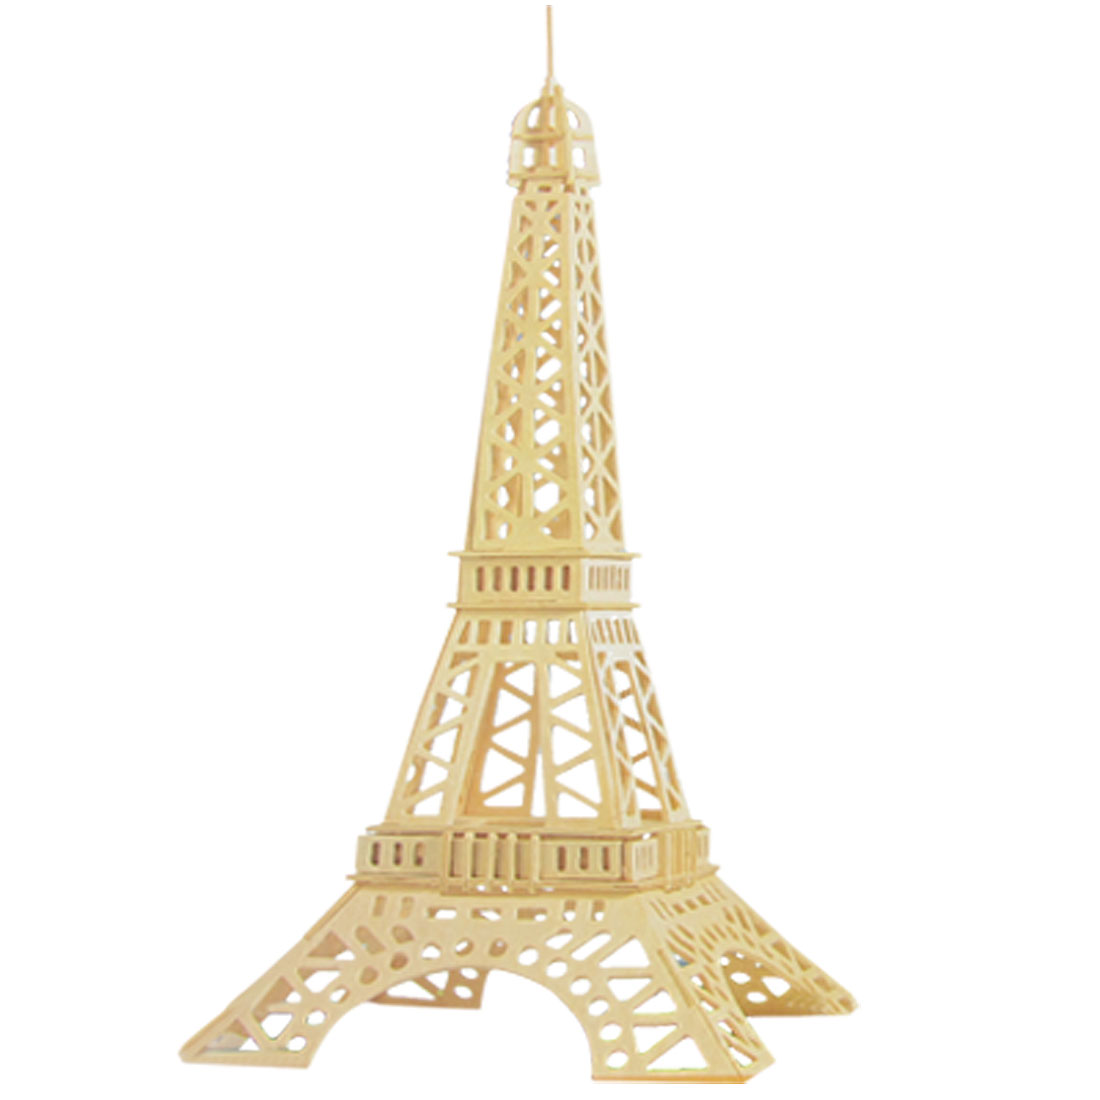 Eiffel Tower Model 3D Wooden Assembly Puzzle Toy DIY Construction Kit for Children